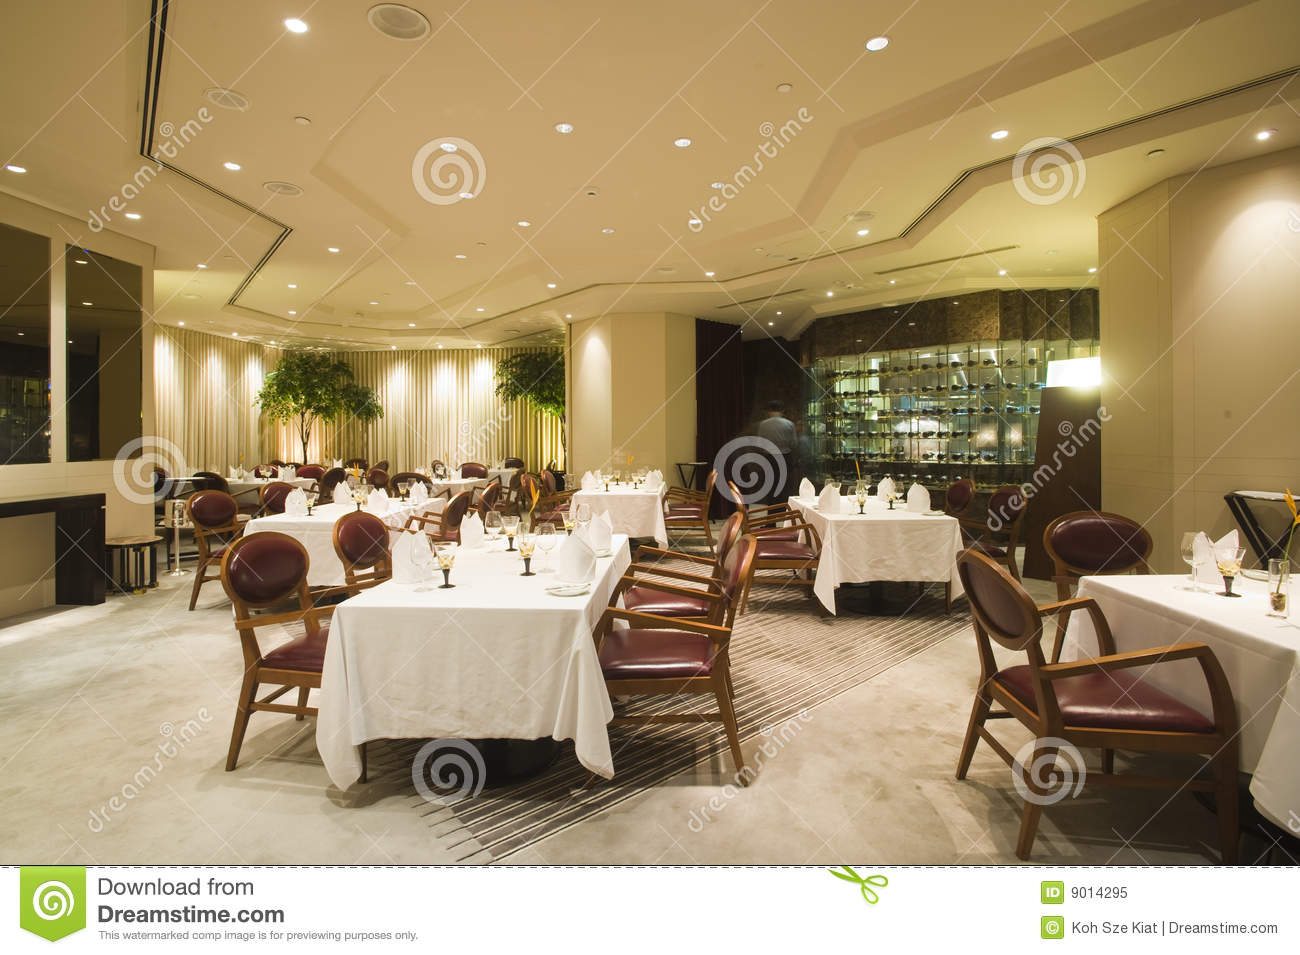 Interior of fine dining restaurant stock image